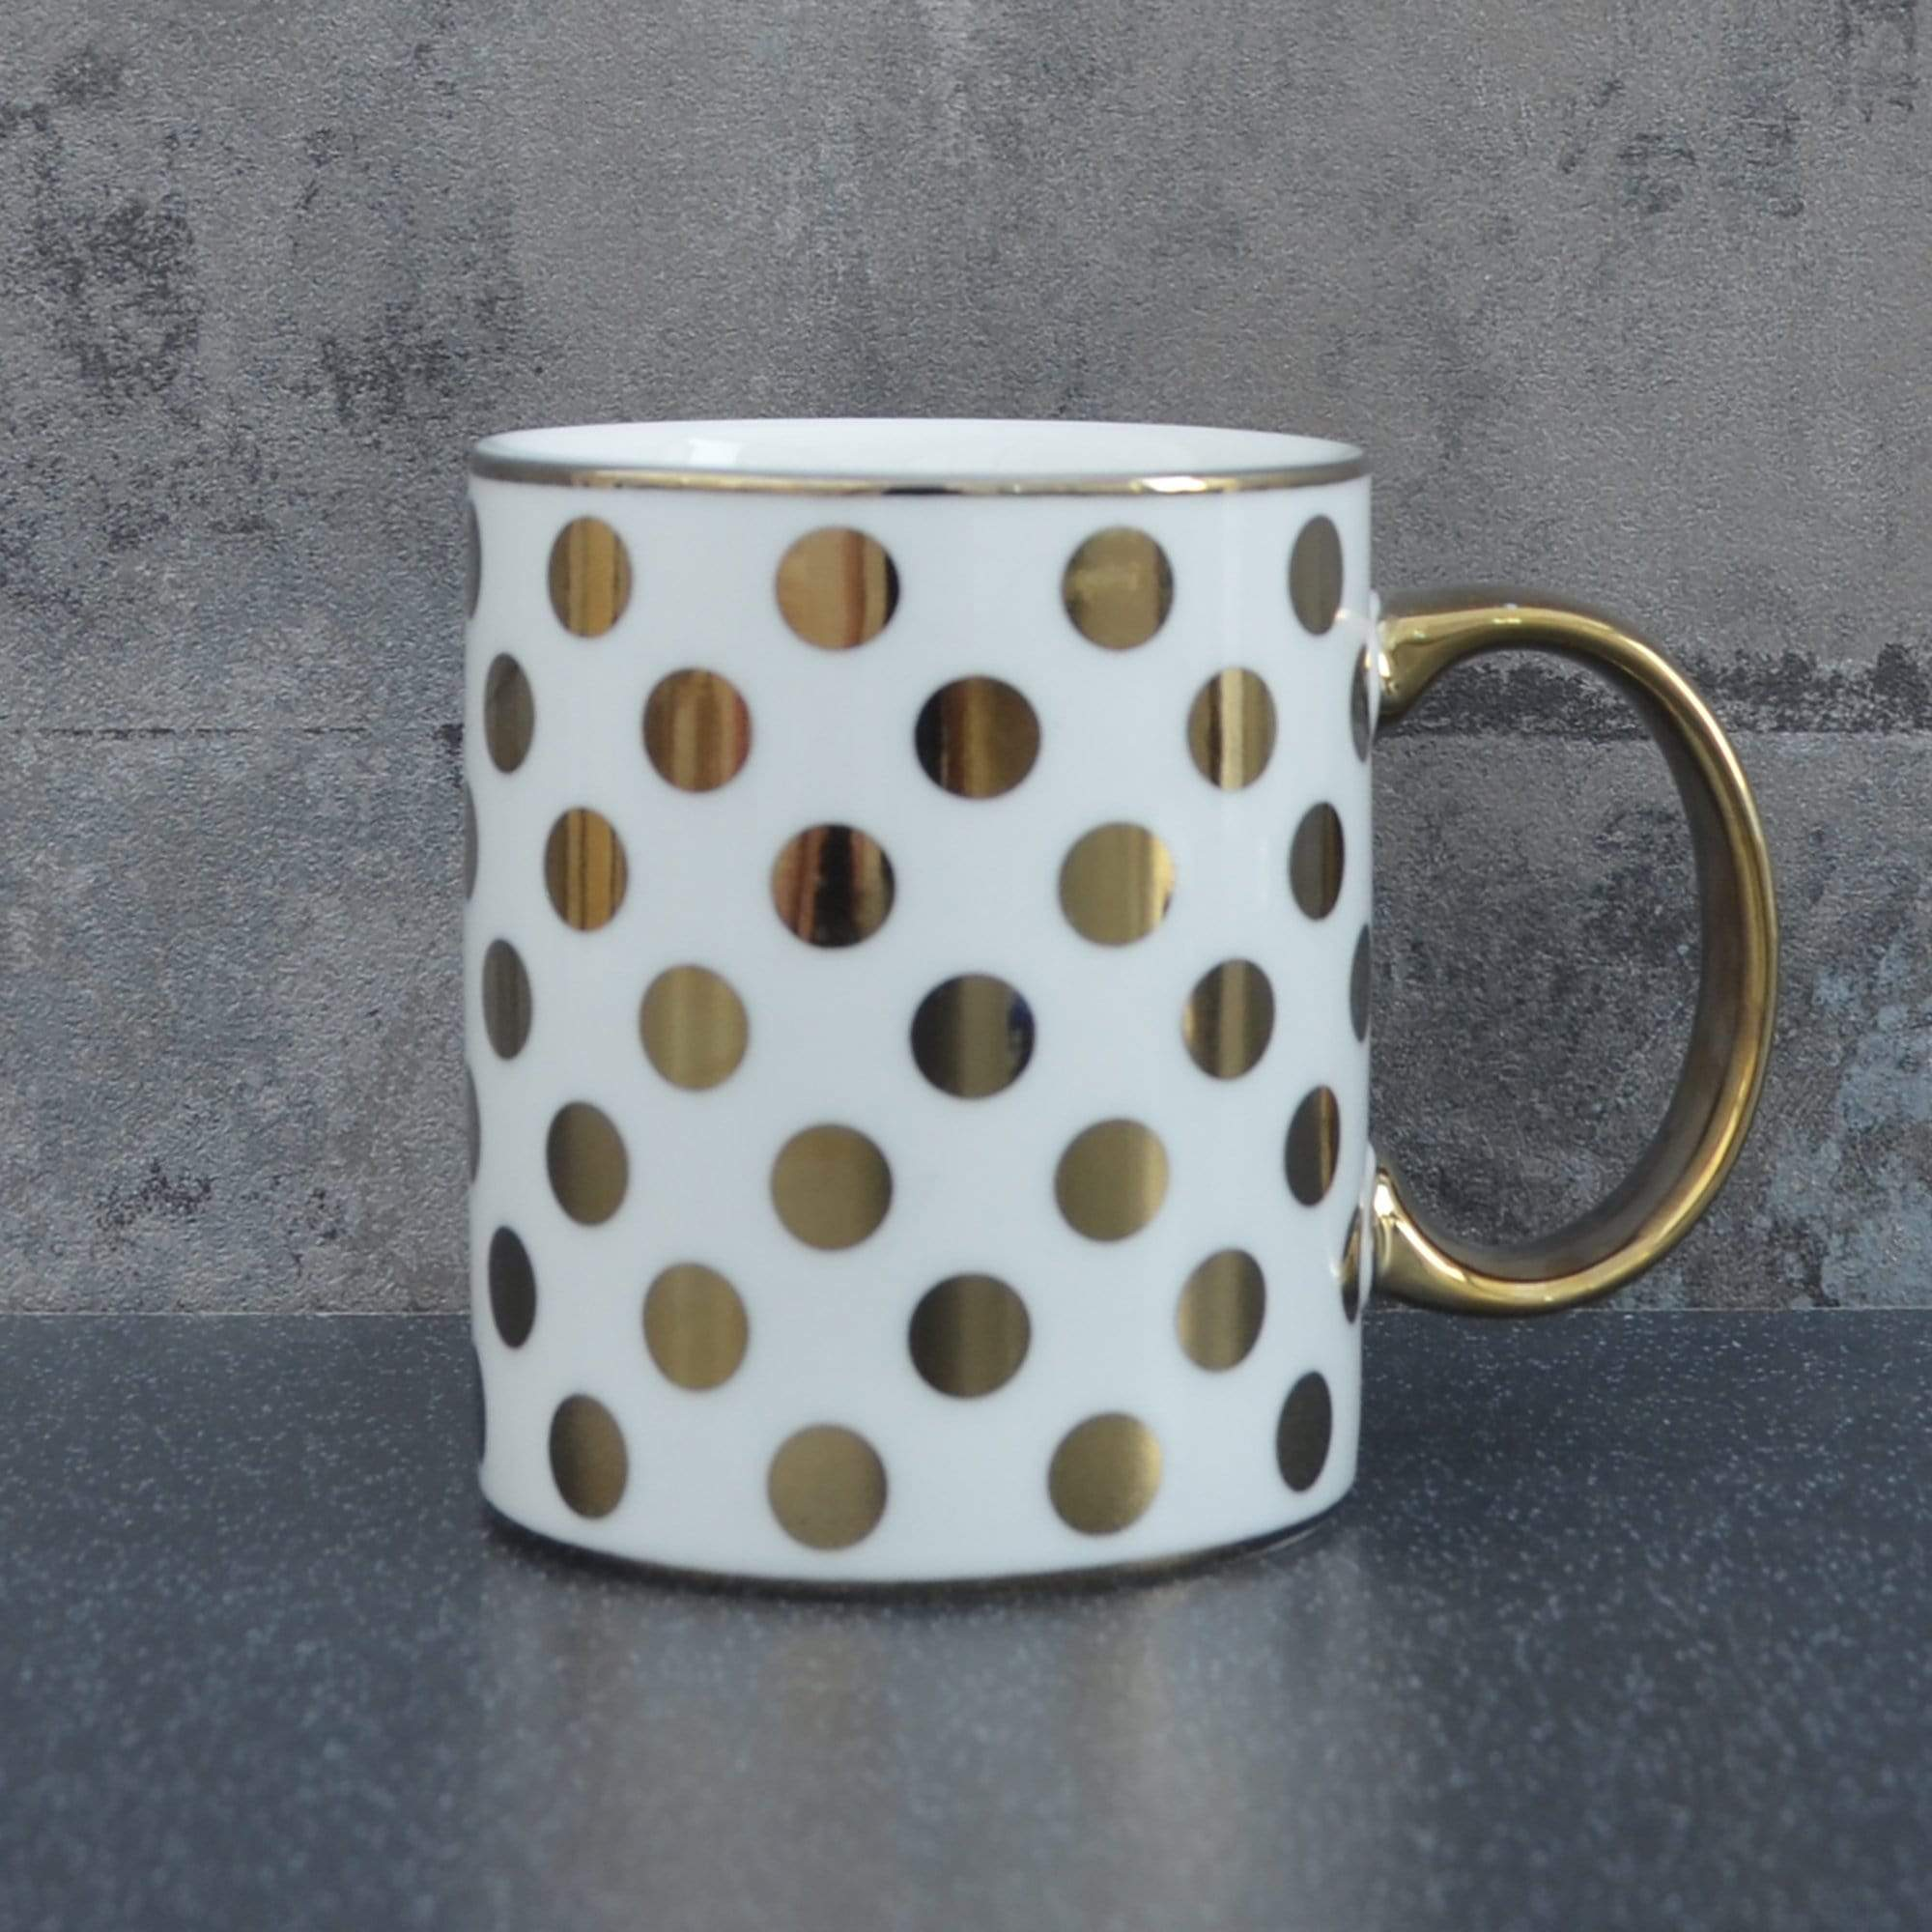 Candlelight Home Mugs Spotty Straight Sided Mug Gold Electroplated 9.7cm 6PK